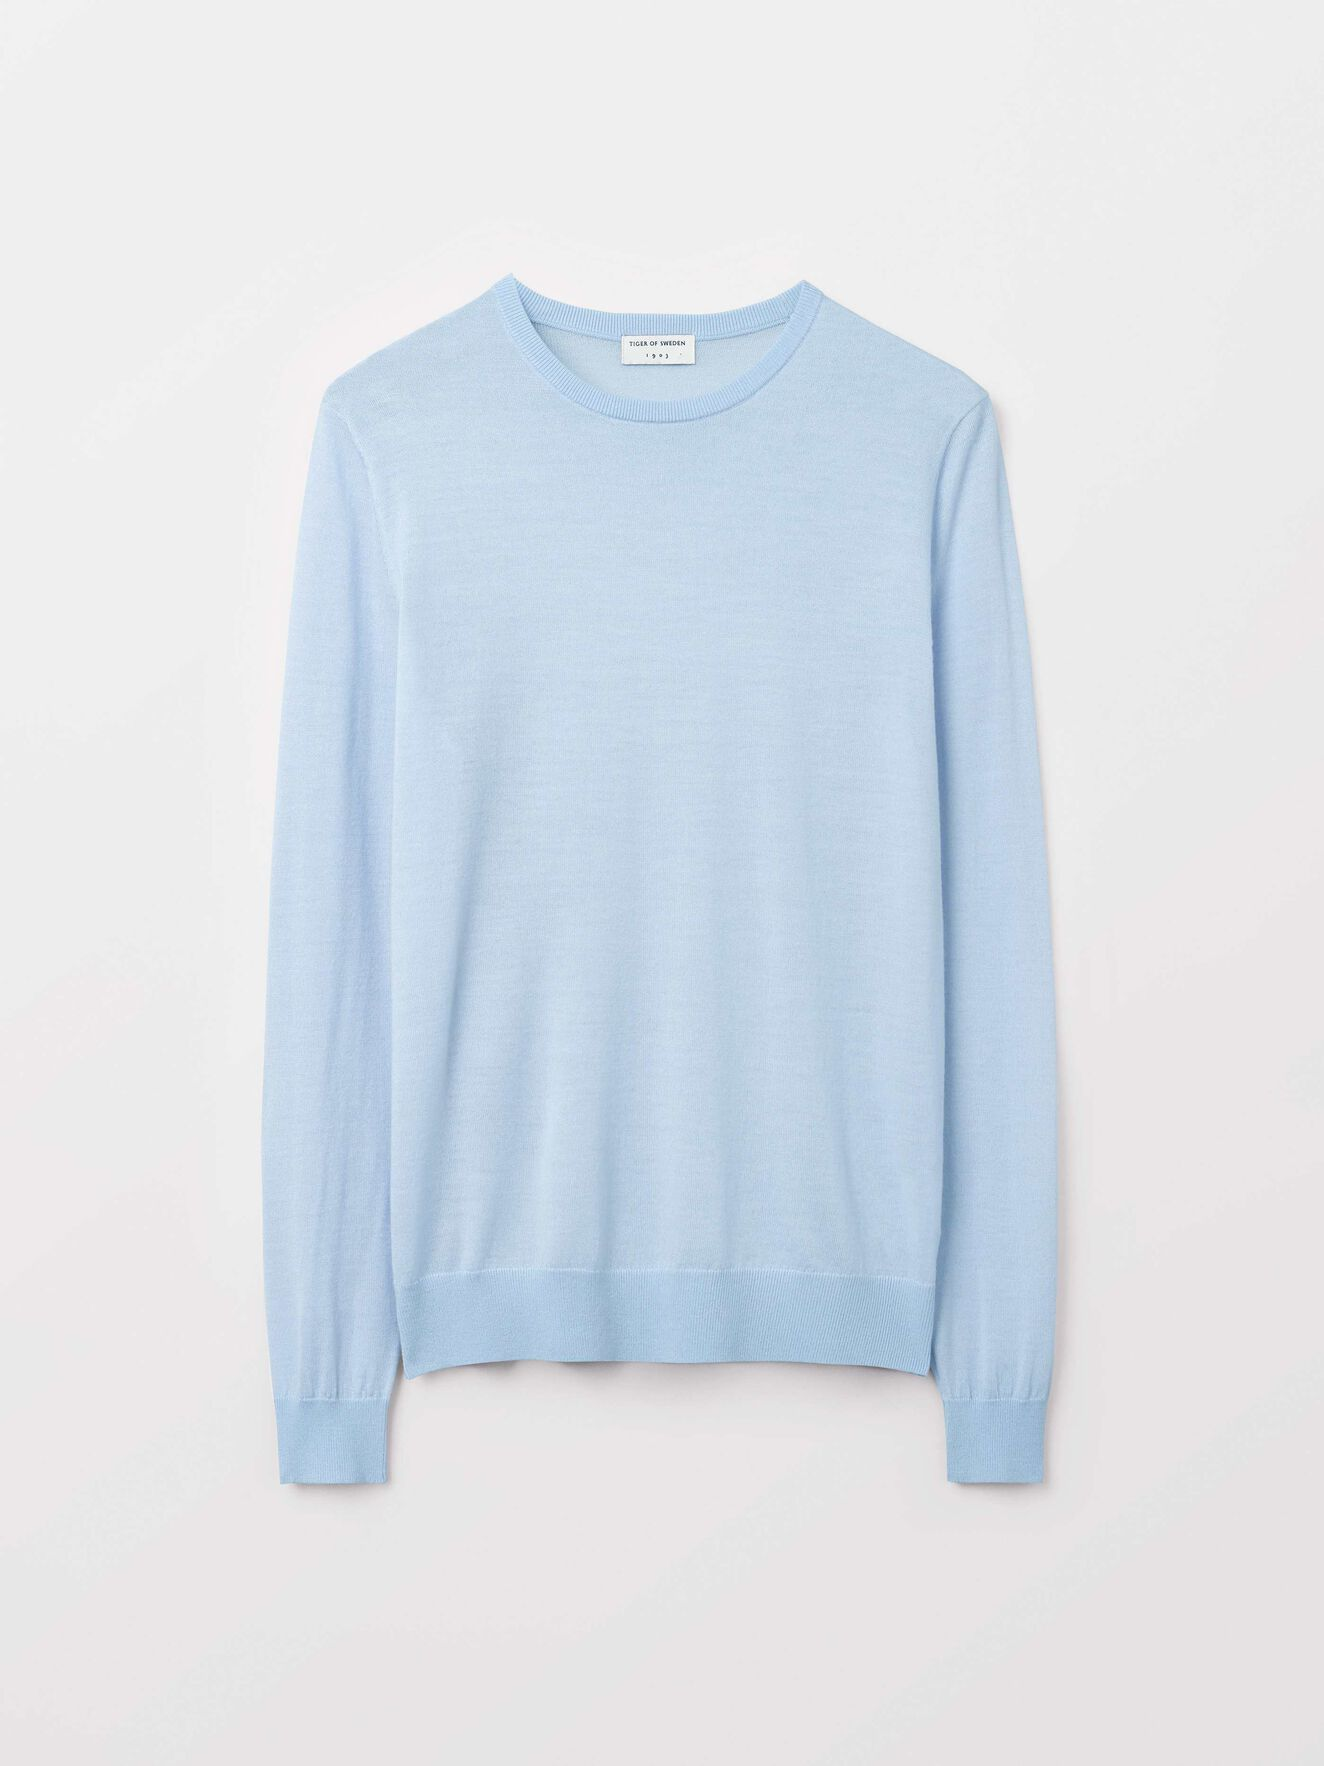 Nichols Pullover in Airy Blue from Tiger of Sweden